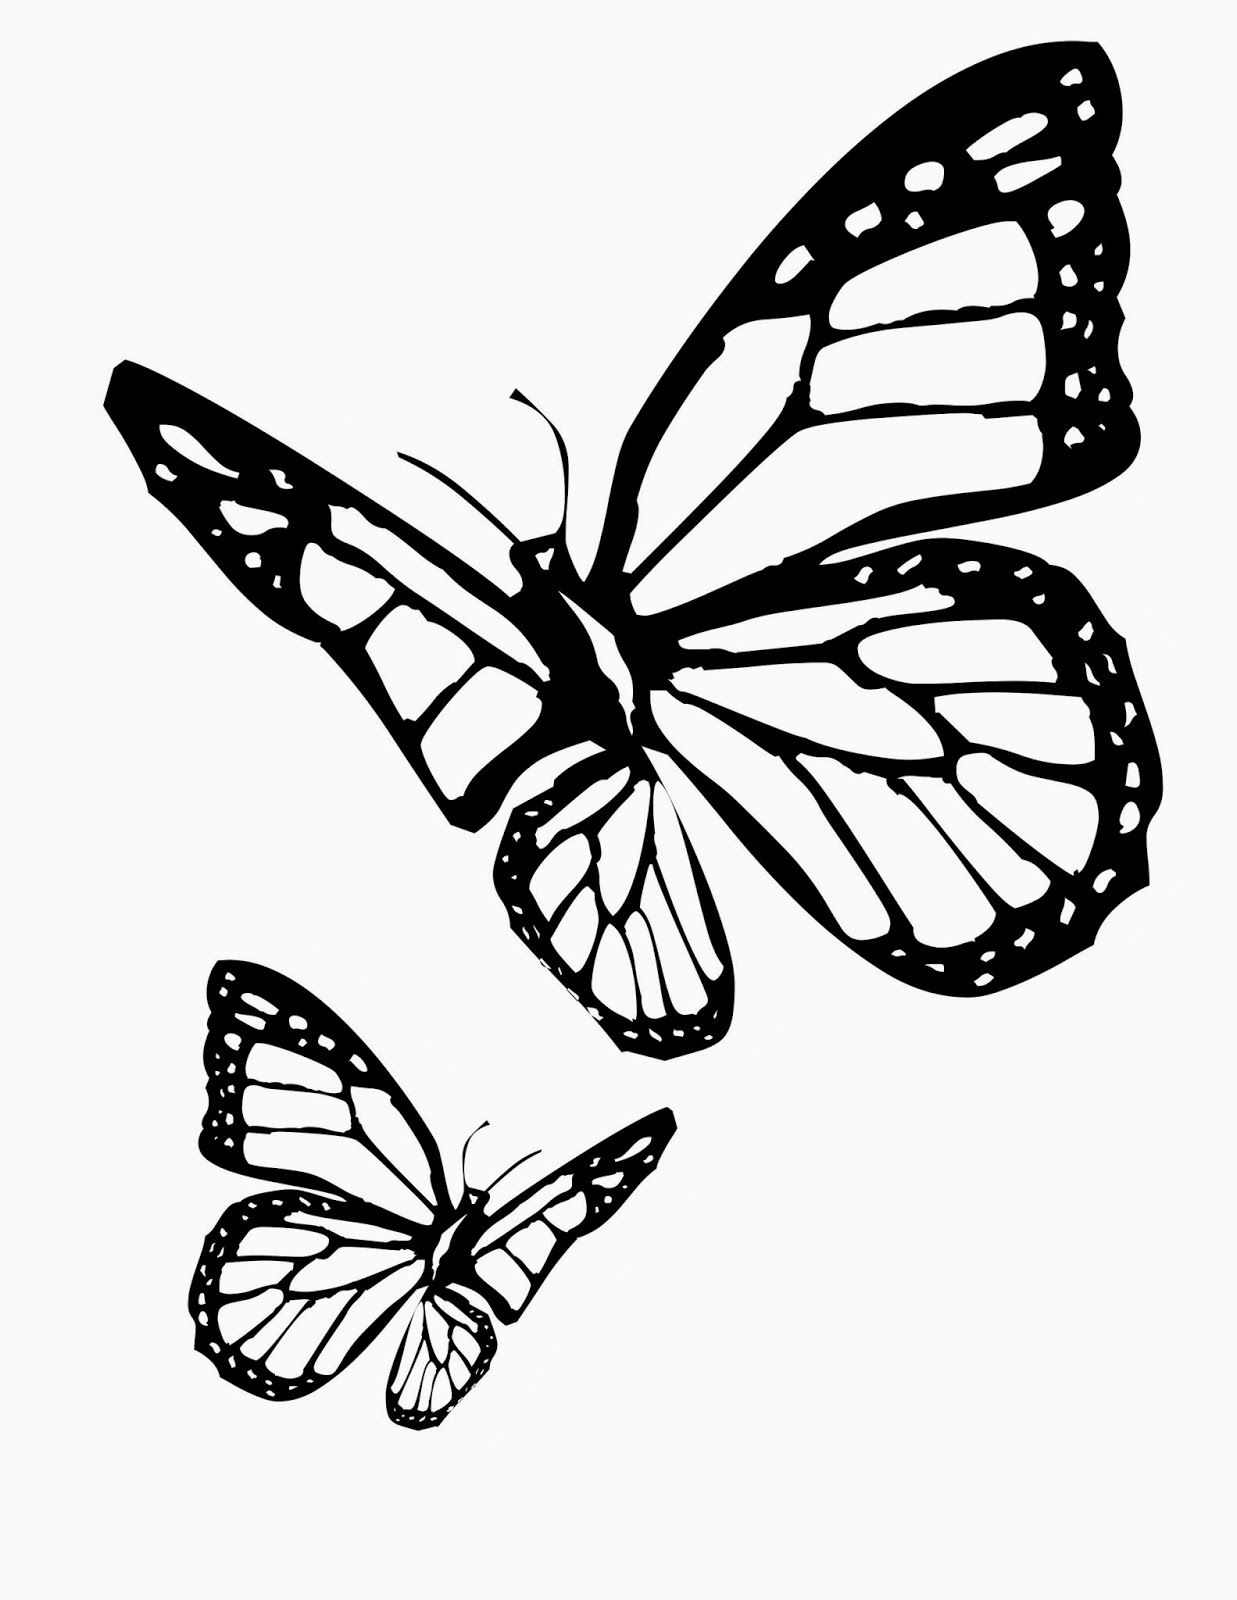 Butterflies | Butterfly coloring page, Monarch butterfly ...